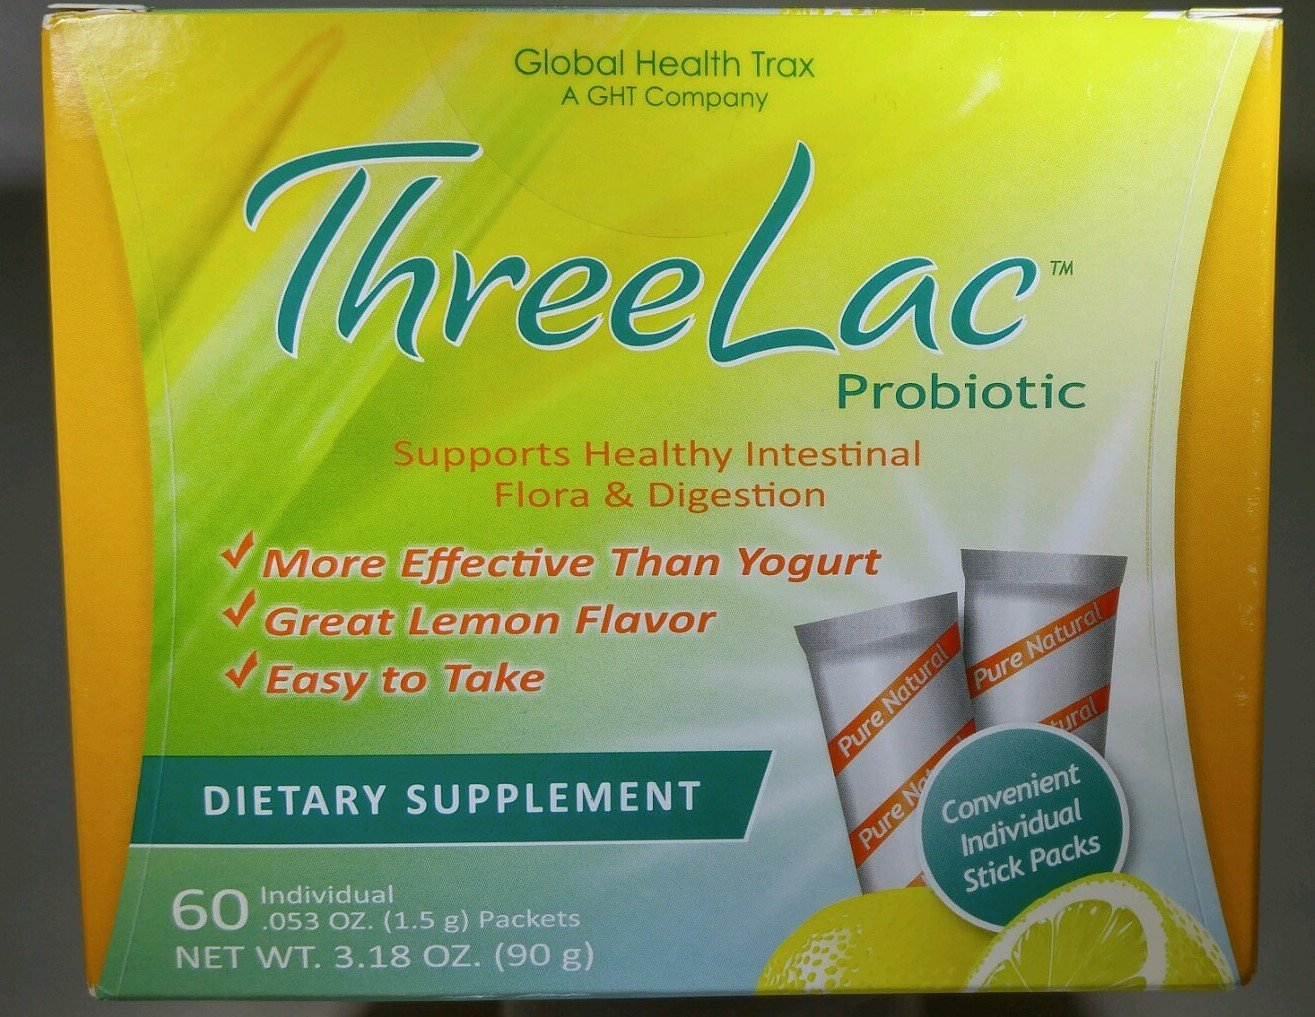 (4) ThreeLac Candida Probiotic Defense by Global Health Trax GHT